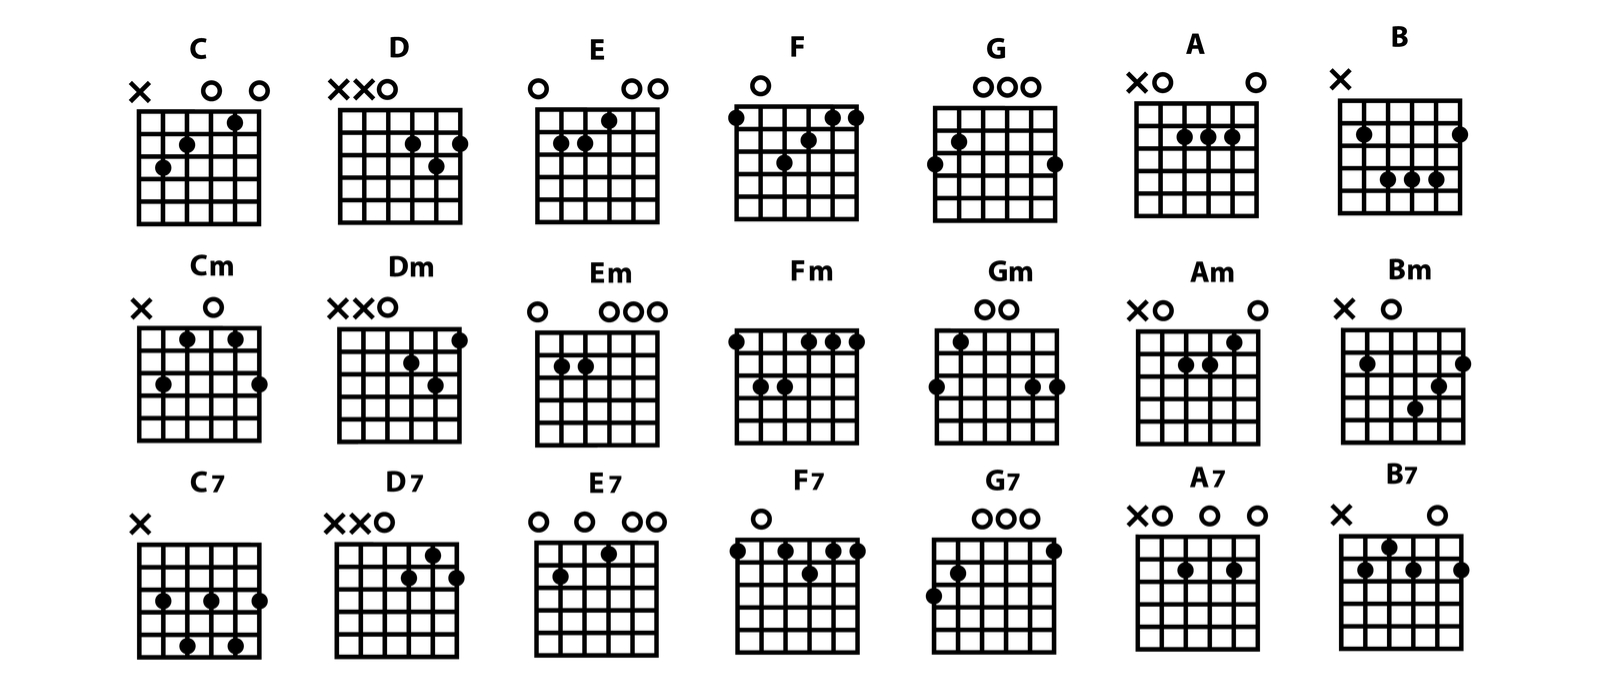 Guitar Chords | How To Play Guitar For Beginners: A Step-by-Step Guide